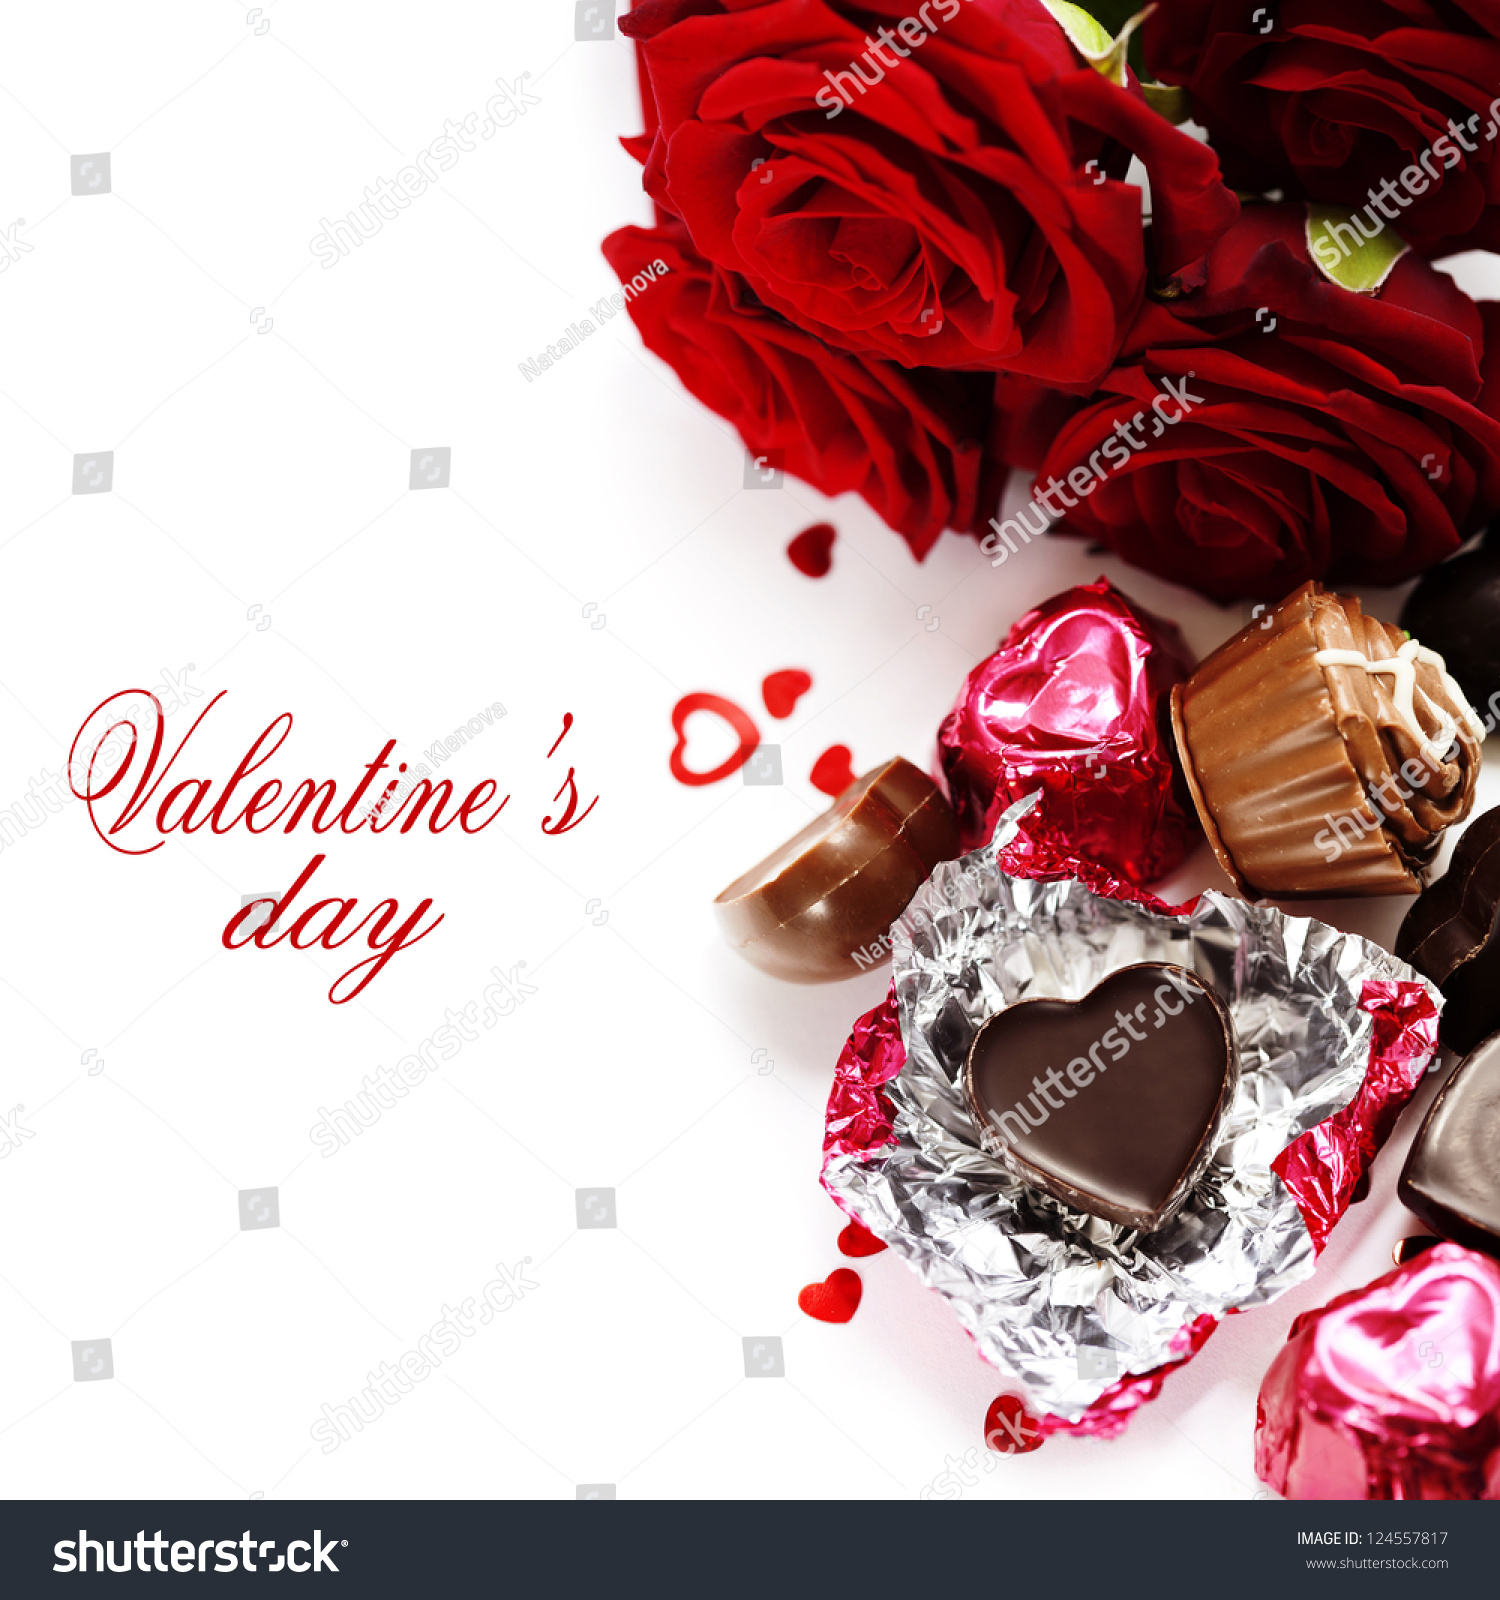 Red Roses Chocolate Hearts Valentines Day Stock Photo Edit Now